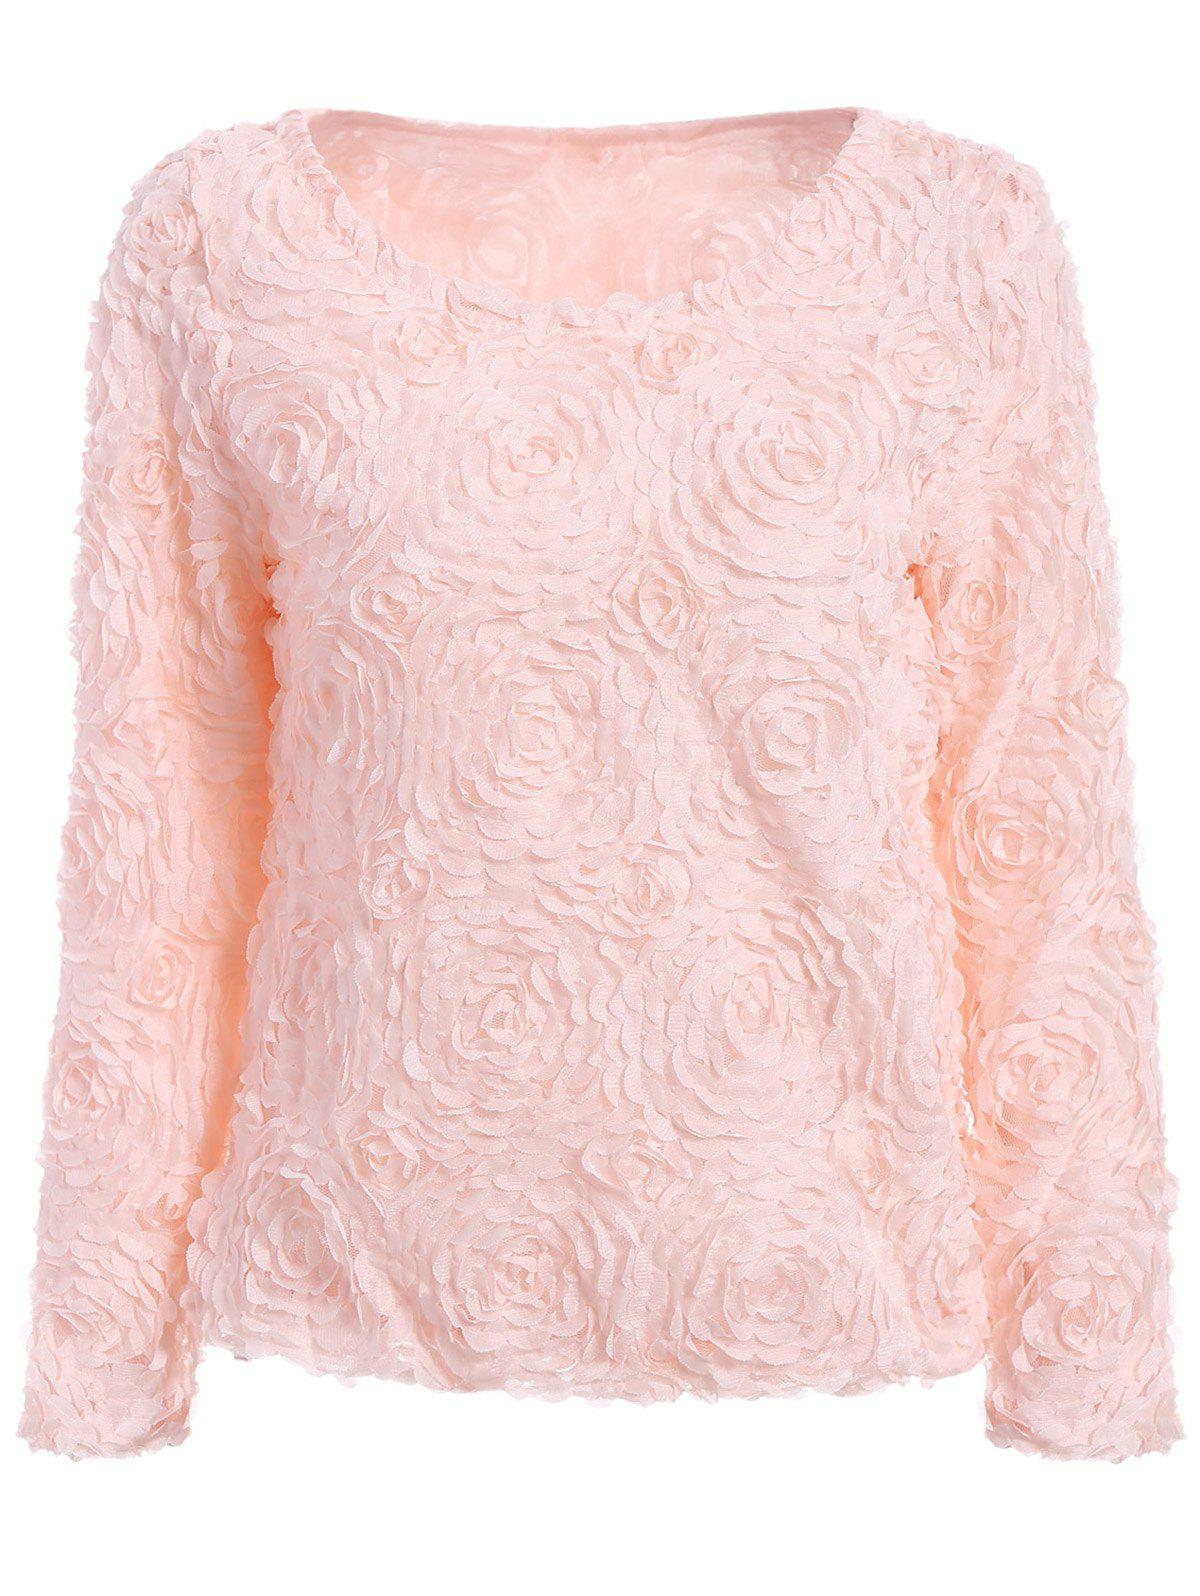 Fresh Style Solid Color Boat Neck 3D Rose Shape Long Sleeve Chiffon Blouse For Women - PINK ONE SIZE(FIT SIZE XS TO M)